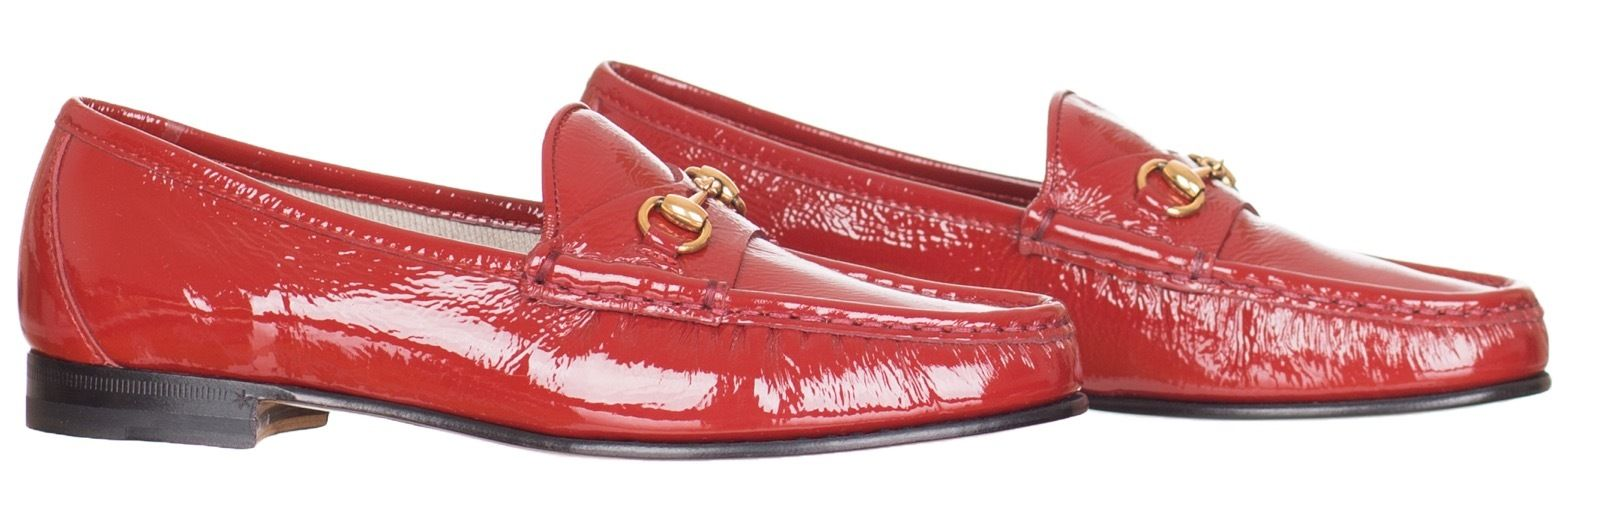 81f053af433 Gucci Women s 1953 Horsebit Red Patent Leather Loafer Shoes US 6.5 EU 36.5